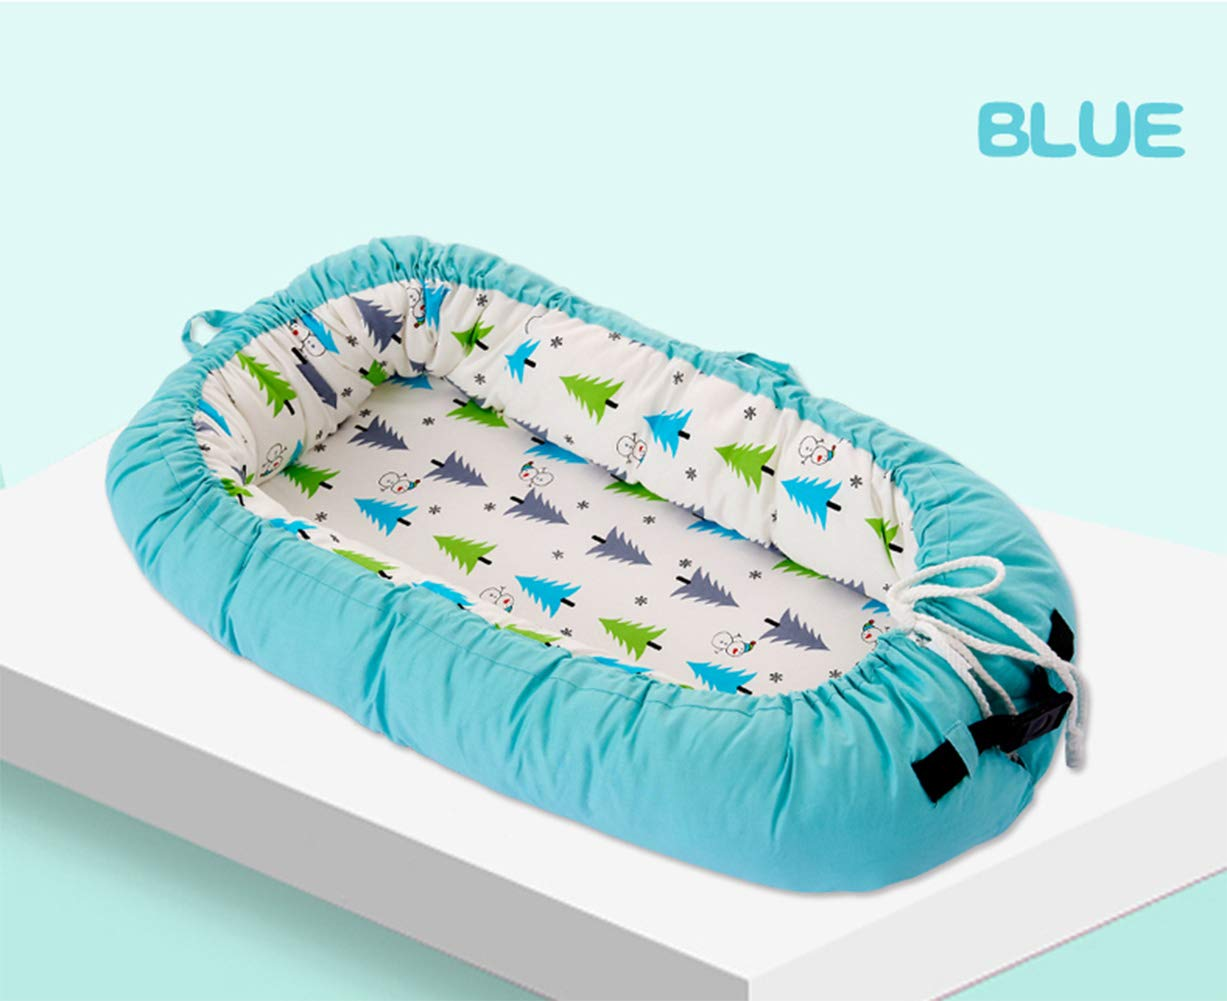 LNDD-2 in 1 Baby Nest Cushion Cocoon Baby Lounger Bionic Uterine Cradle Mattresses Travel Bumpers,Blue LNDD ★CARE FOR THE BABY'S SPINE: The sponge mattress fits the baby's back, moderately soft and hard, and the sleep is evenly applied for a long time. ★RETRACTABLE DESIGN: buckle drawstring design Telescopic adjustment Different ages Different comfort spaces. ★MULTI-FUNCTION: windproof and anti-mosquito shading, easy to use, handle design foldable, easy to carry out and easy to take 1